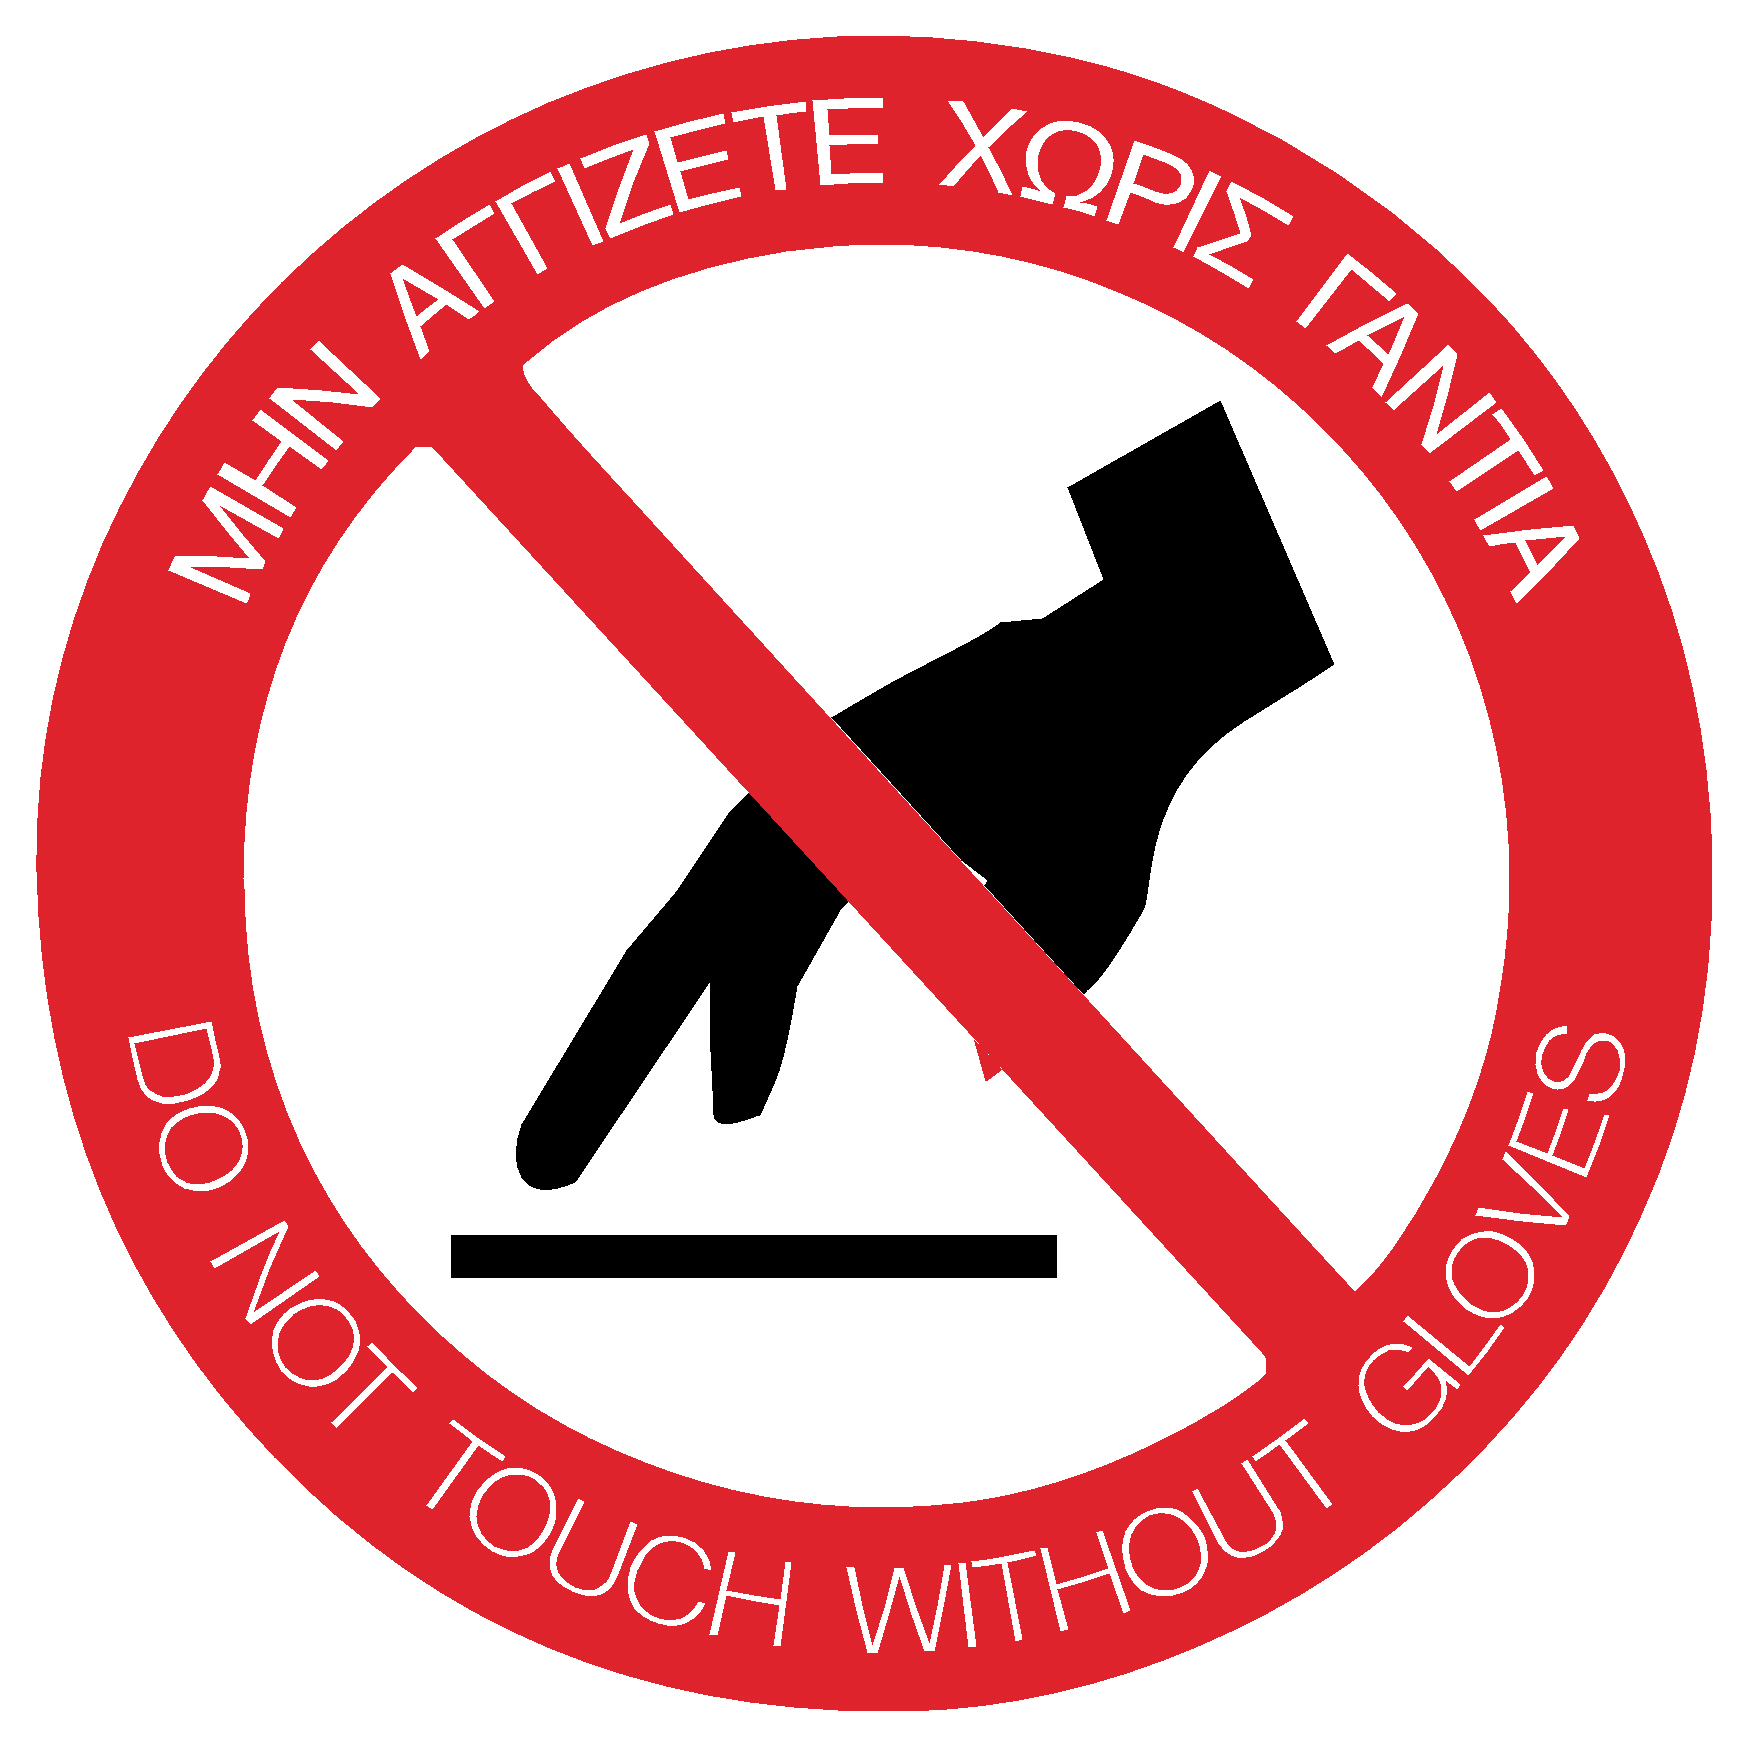 DO NOT TOUCH (SET OF 2PC) SIGN